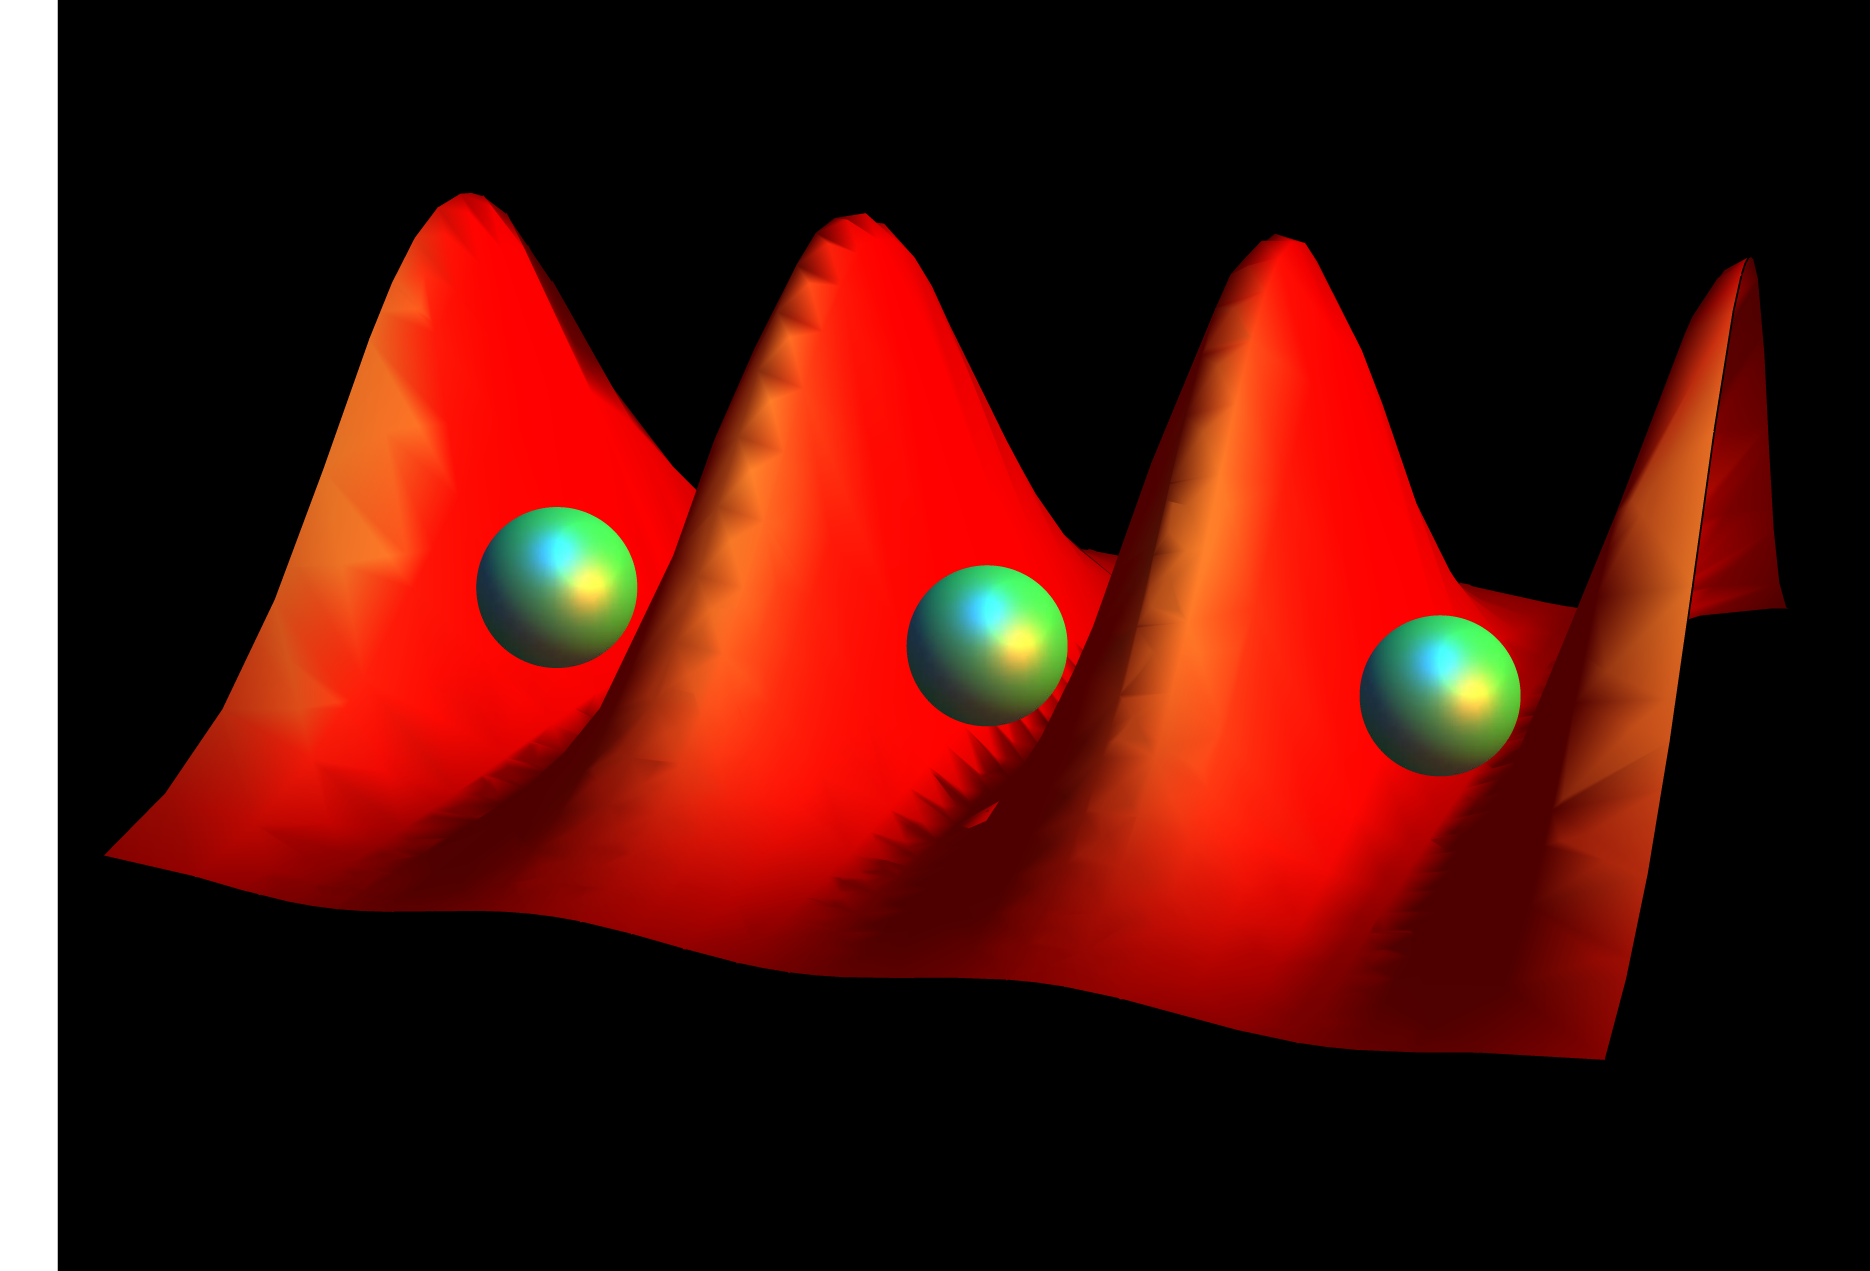 Giant Rydberg atoms become trapped in wells of laser light in a new highly efficient trap developed by University of Michigan physicists. They liken it to an egg carton. Image: Sarah Anderson